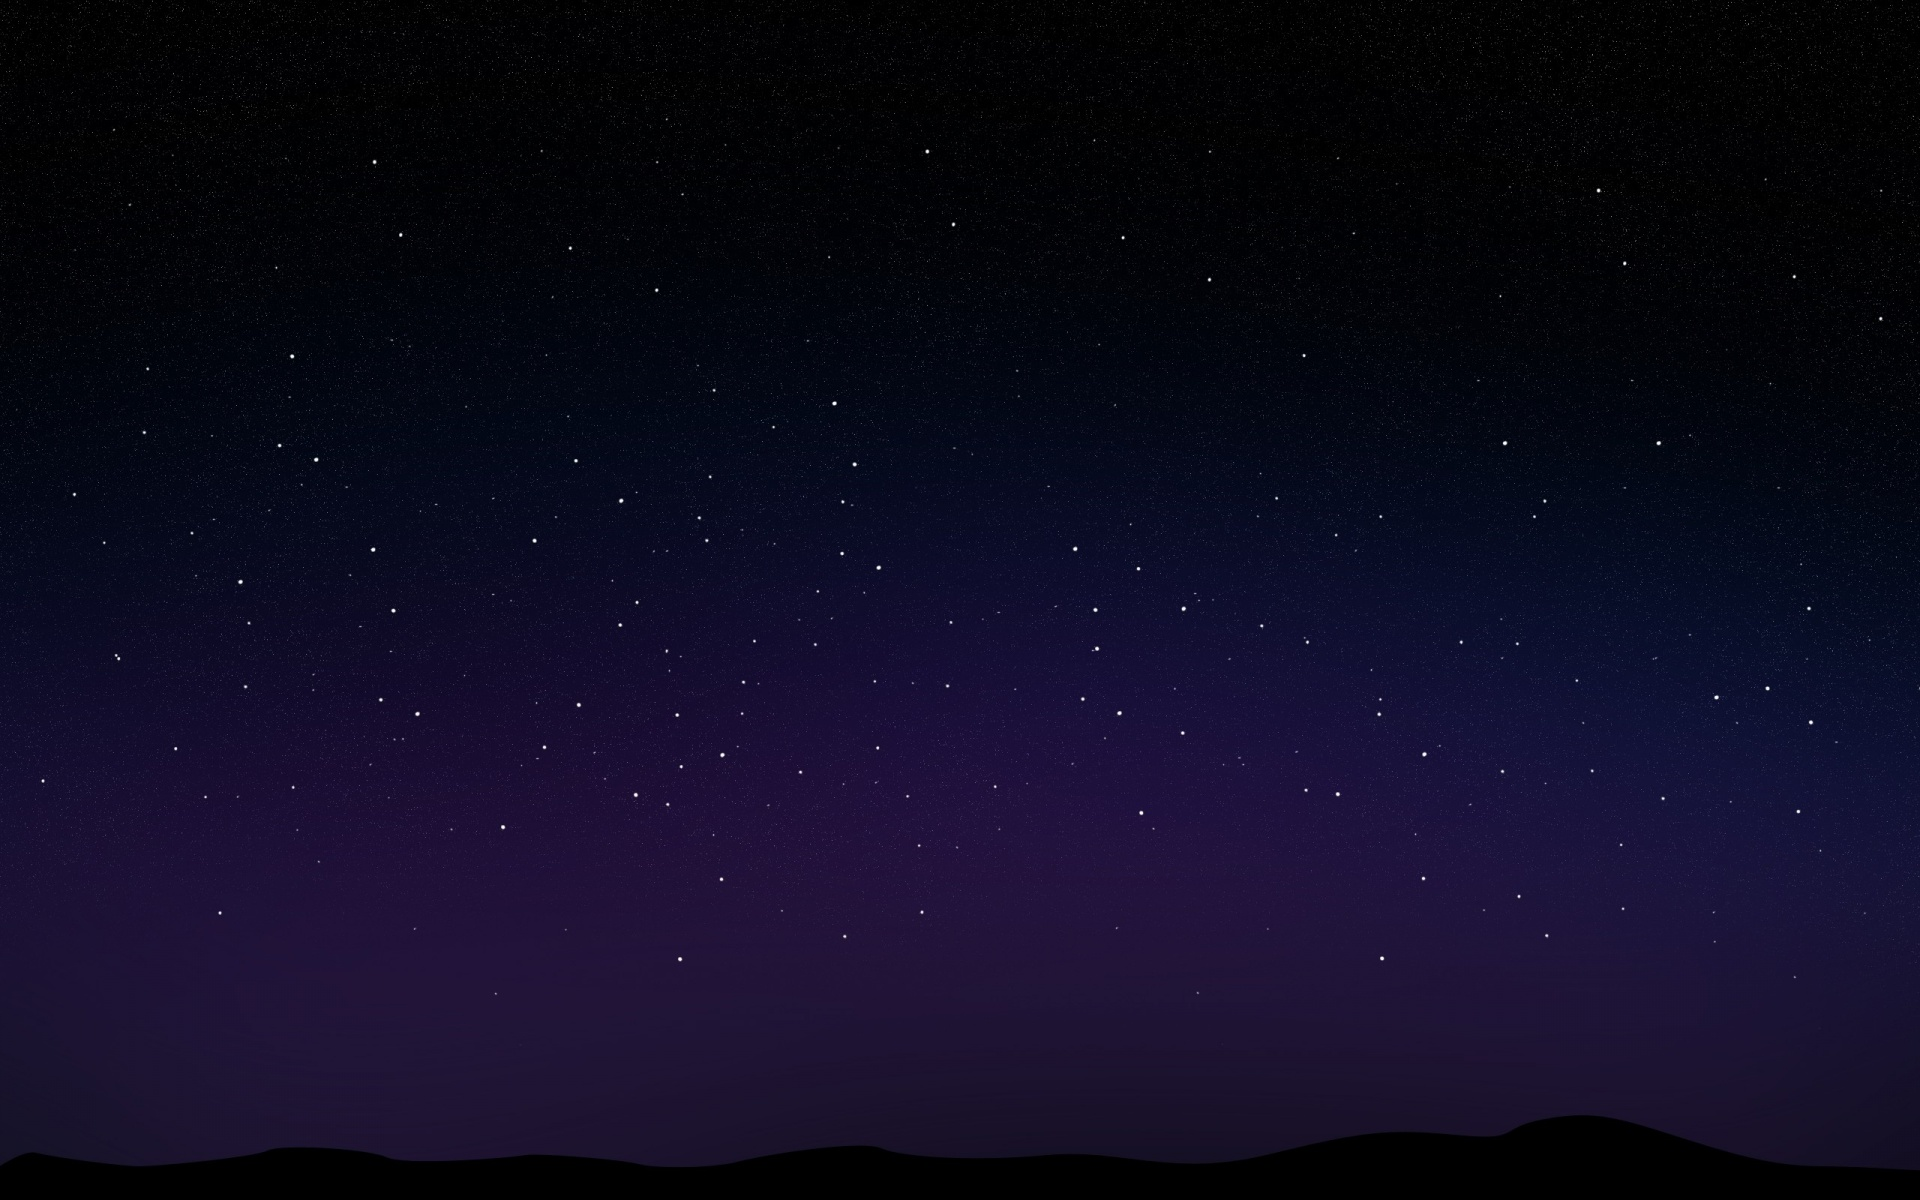 Dark Starry Night Sky Wallpaper Images amp Pictures   Becuo 1920x1200